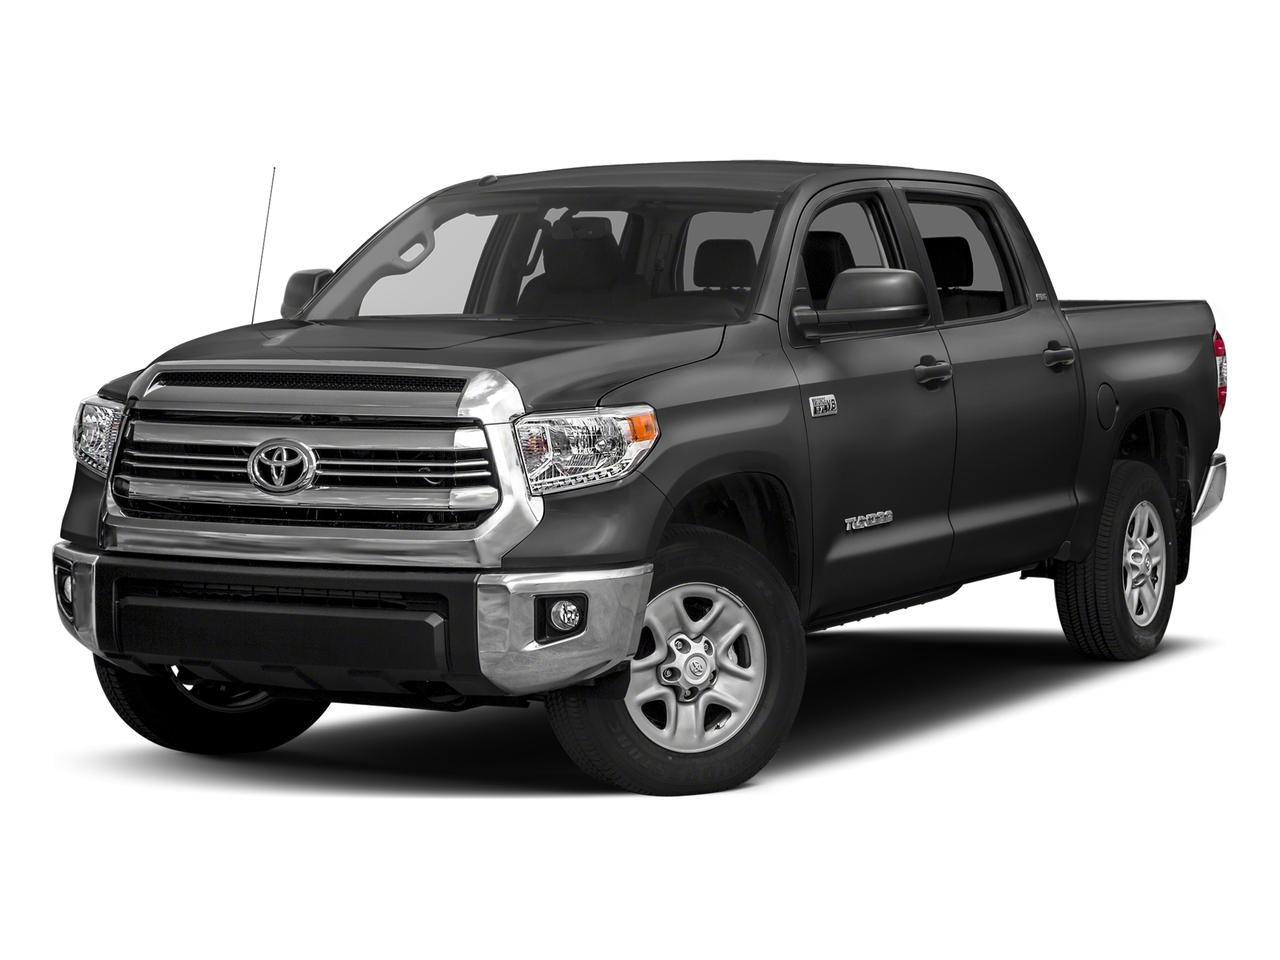 2017 Toyota Tundra 4WD Vehicle Photo in Nederland, TX 77627